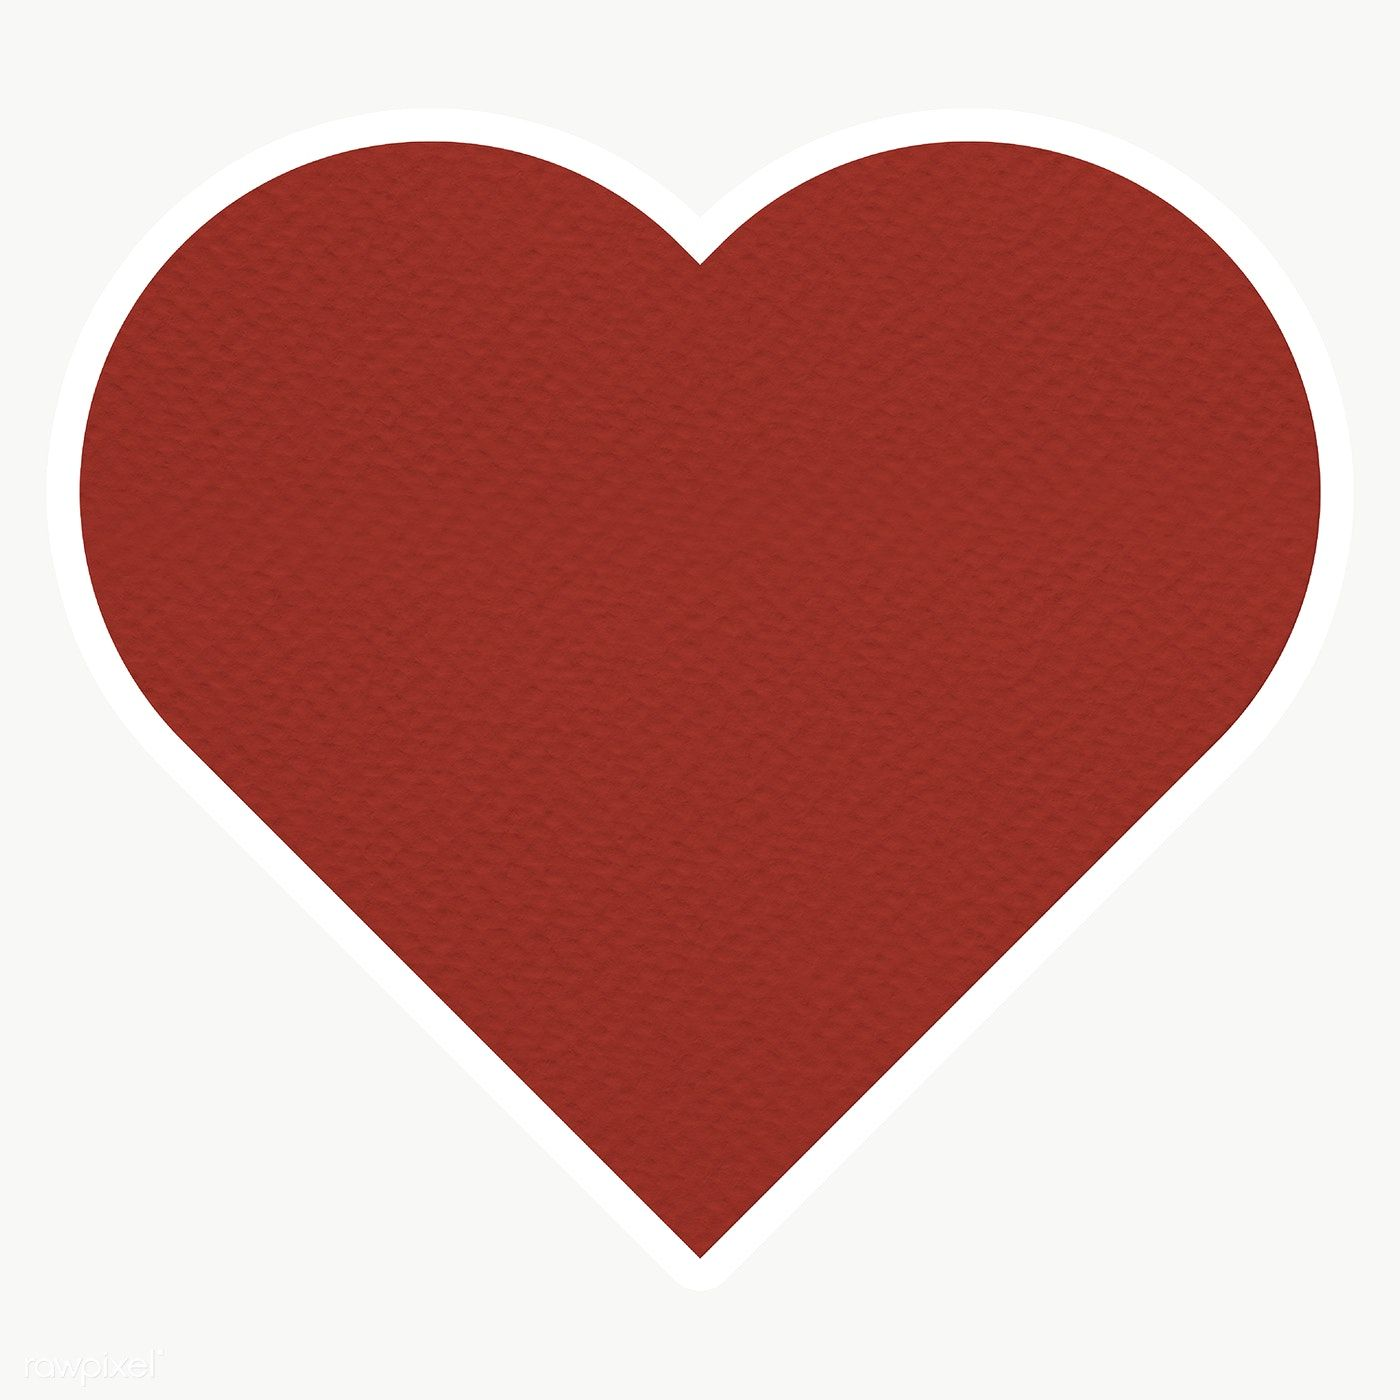 Red Textured Paper Heart Shaped Sticker Design Element Free Image By Rawpixel Com Sasi Sticker Design Paper Texture Paper Heart